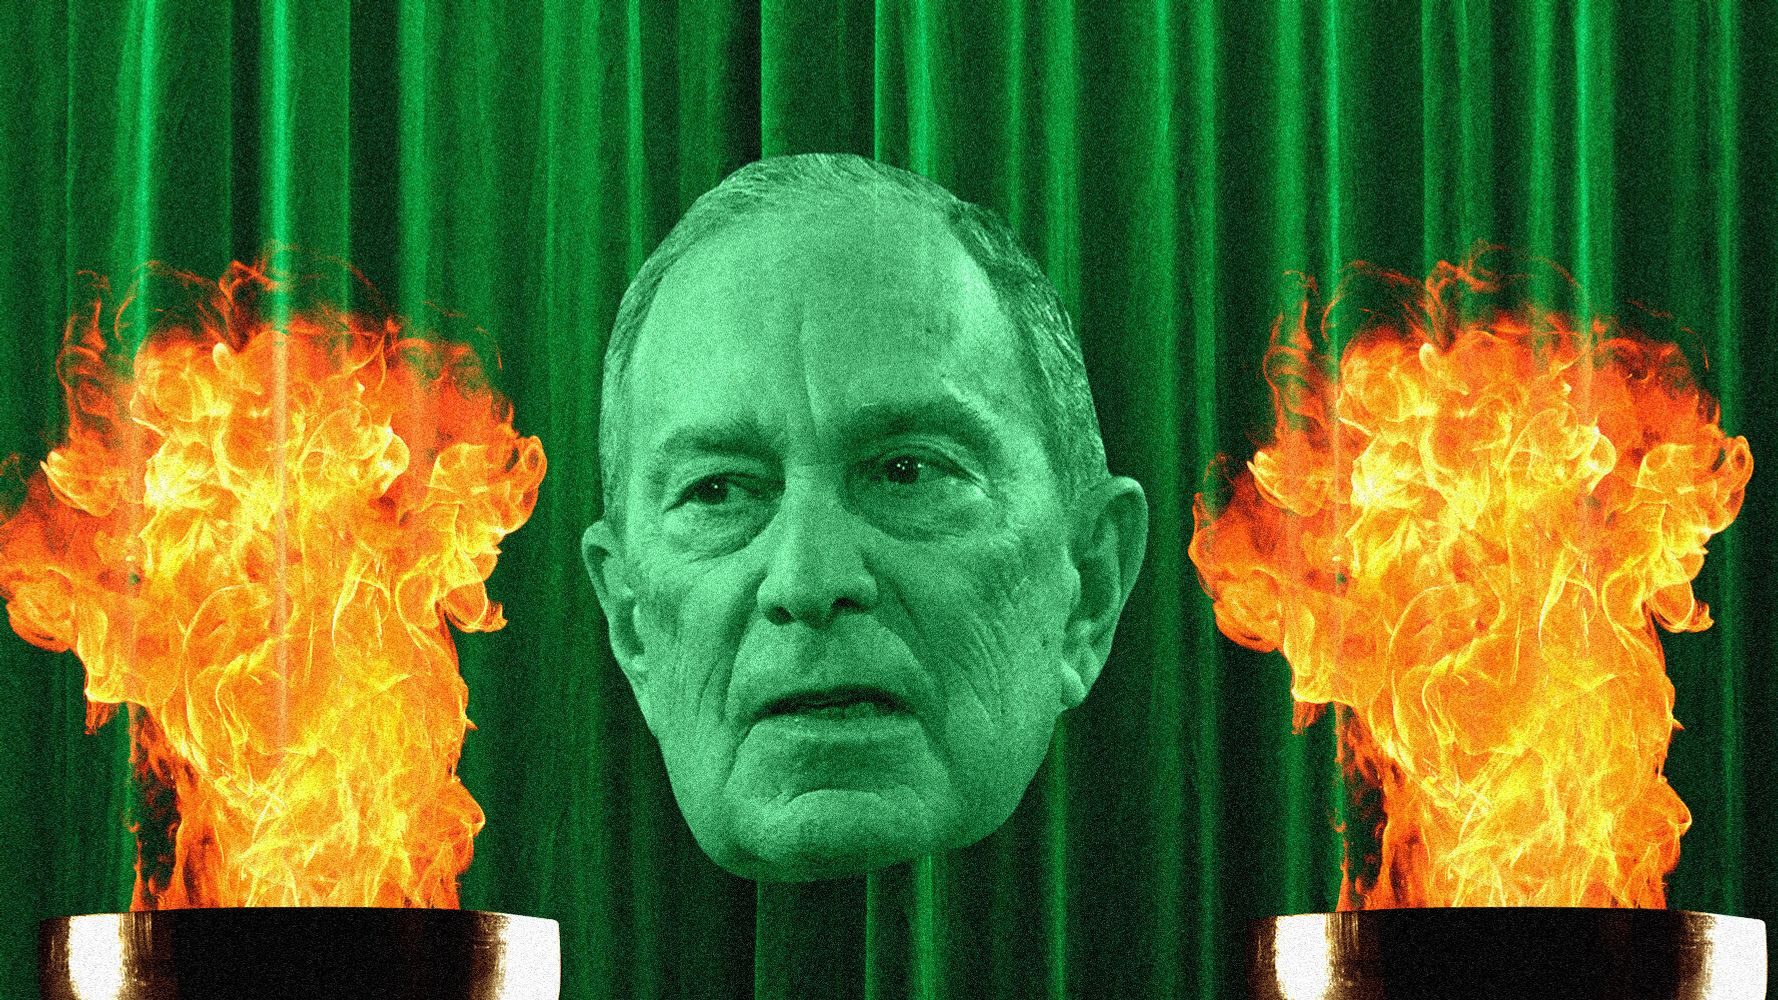 Mike Bloomberg's 'Wizard Of Oz' Campaign Hid His Record Behind The Curtain